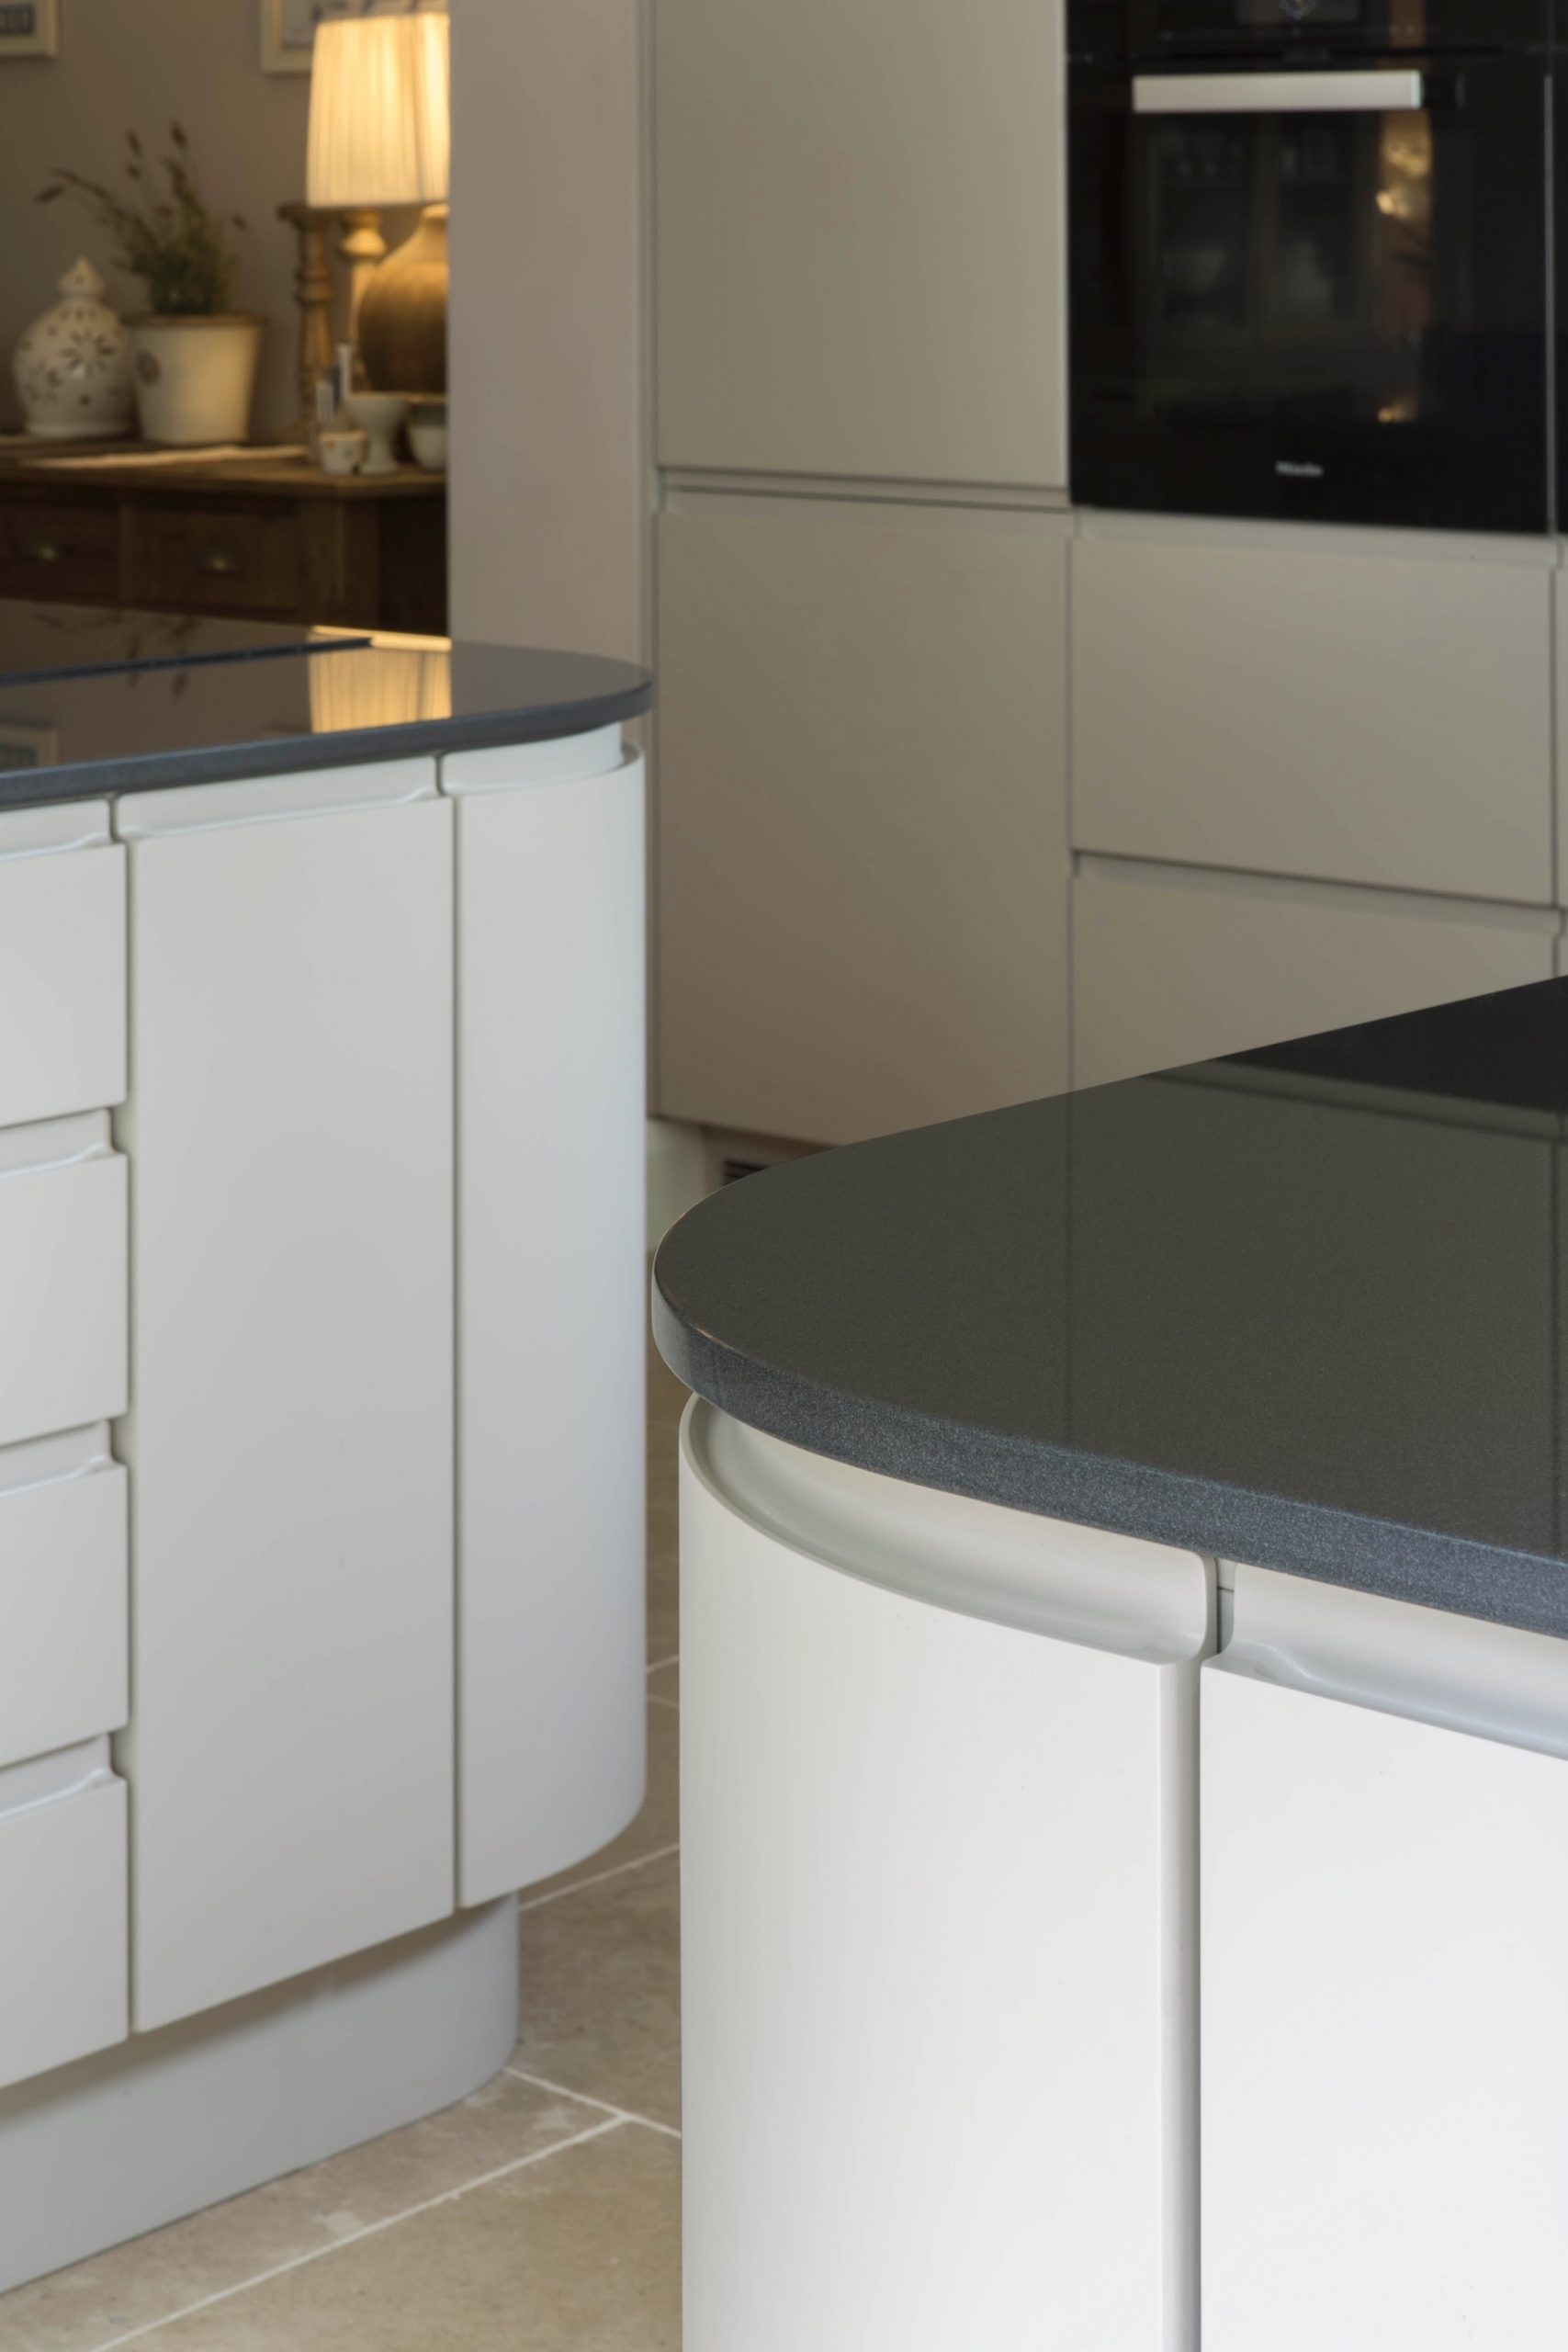 mocha handleless kitchen goring oxford curved doors oxfordshire 2 scaled